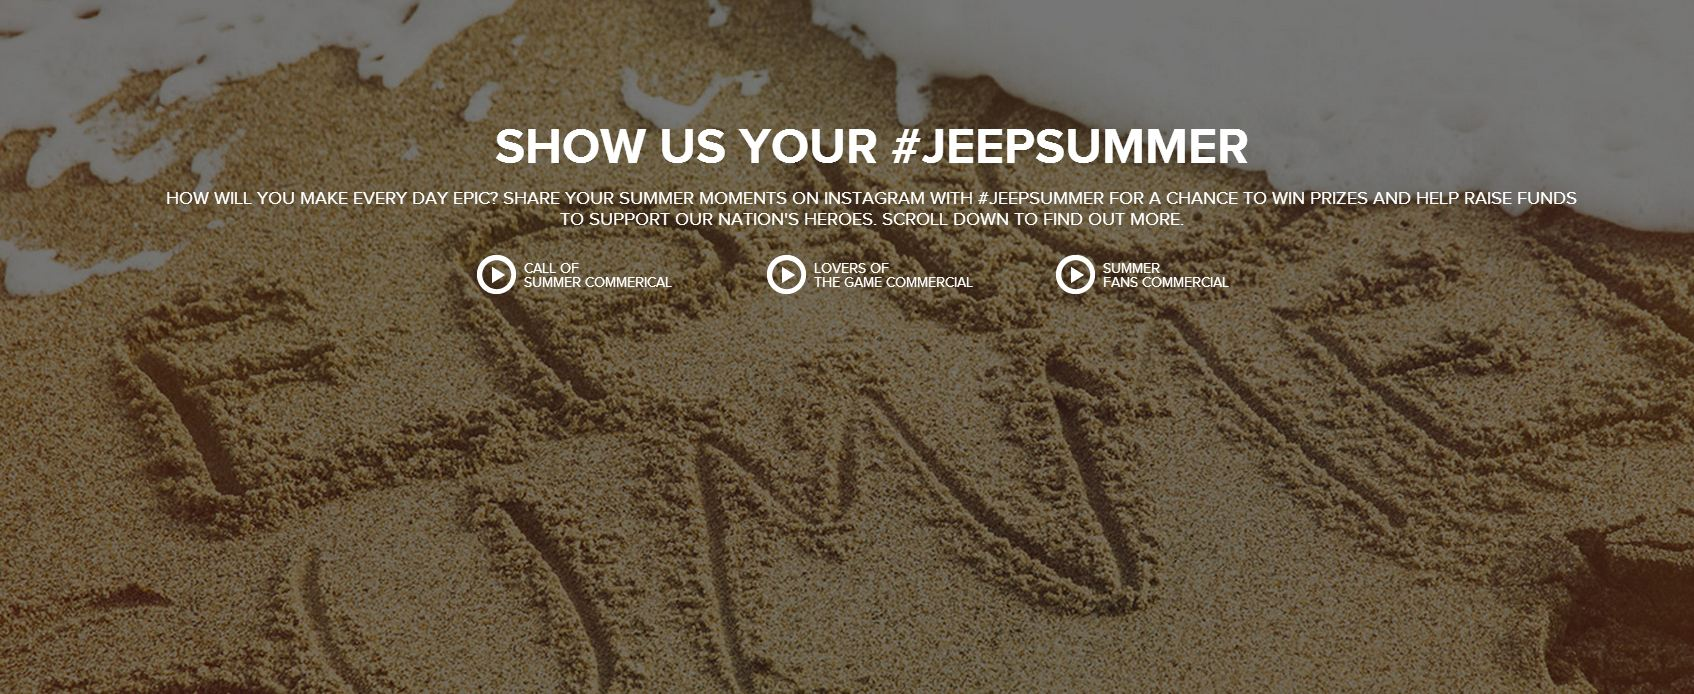 Enter the Jeep Summer Moments Sweepstakes Today - The News Wheel